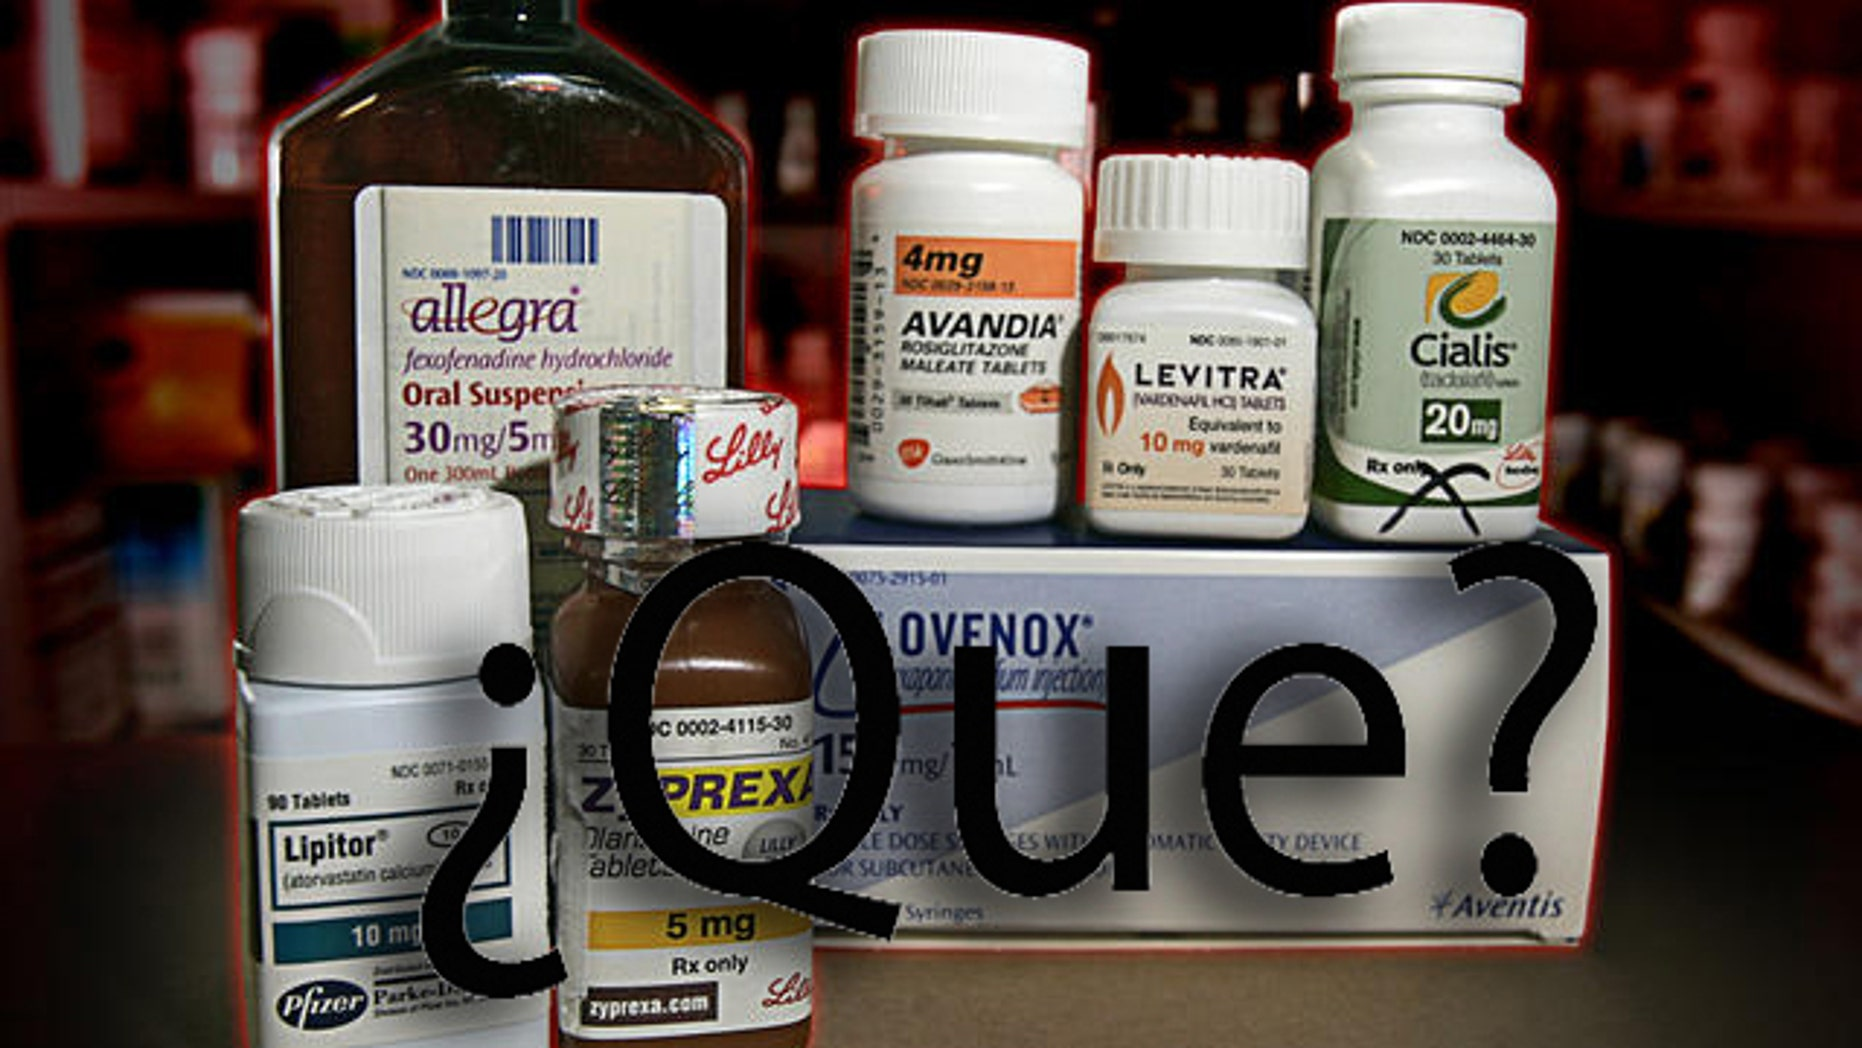 A selection of prescription drugs, including Allegra, Zyprexa, Levitra, Cialis and Lipitor are shown in an Indianapolis pharmacy, Wednesday, Jan. 9, 2008. Drug companies often delve into a weird science that ties symbolism to letters or prefixes when they hunt for the next hot brand name. They spend millions to drum up a well-known name like Lipitor while hoping to avoid the fate of Ayds, an unfortunately named appetite suppressant that saw sales sink once AIDS entered the public consciousness. (AP Photo/Michael Conroy)